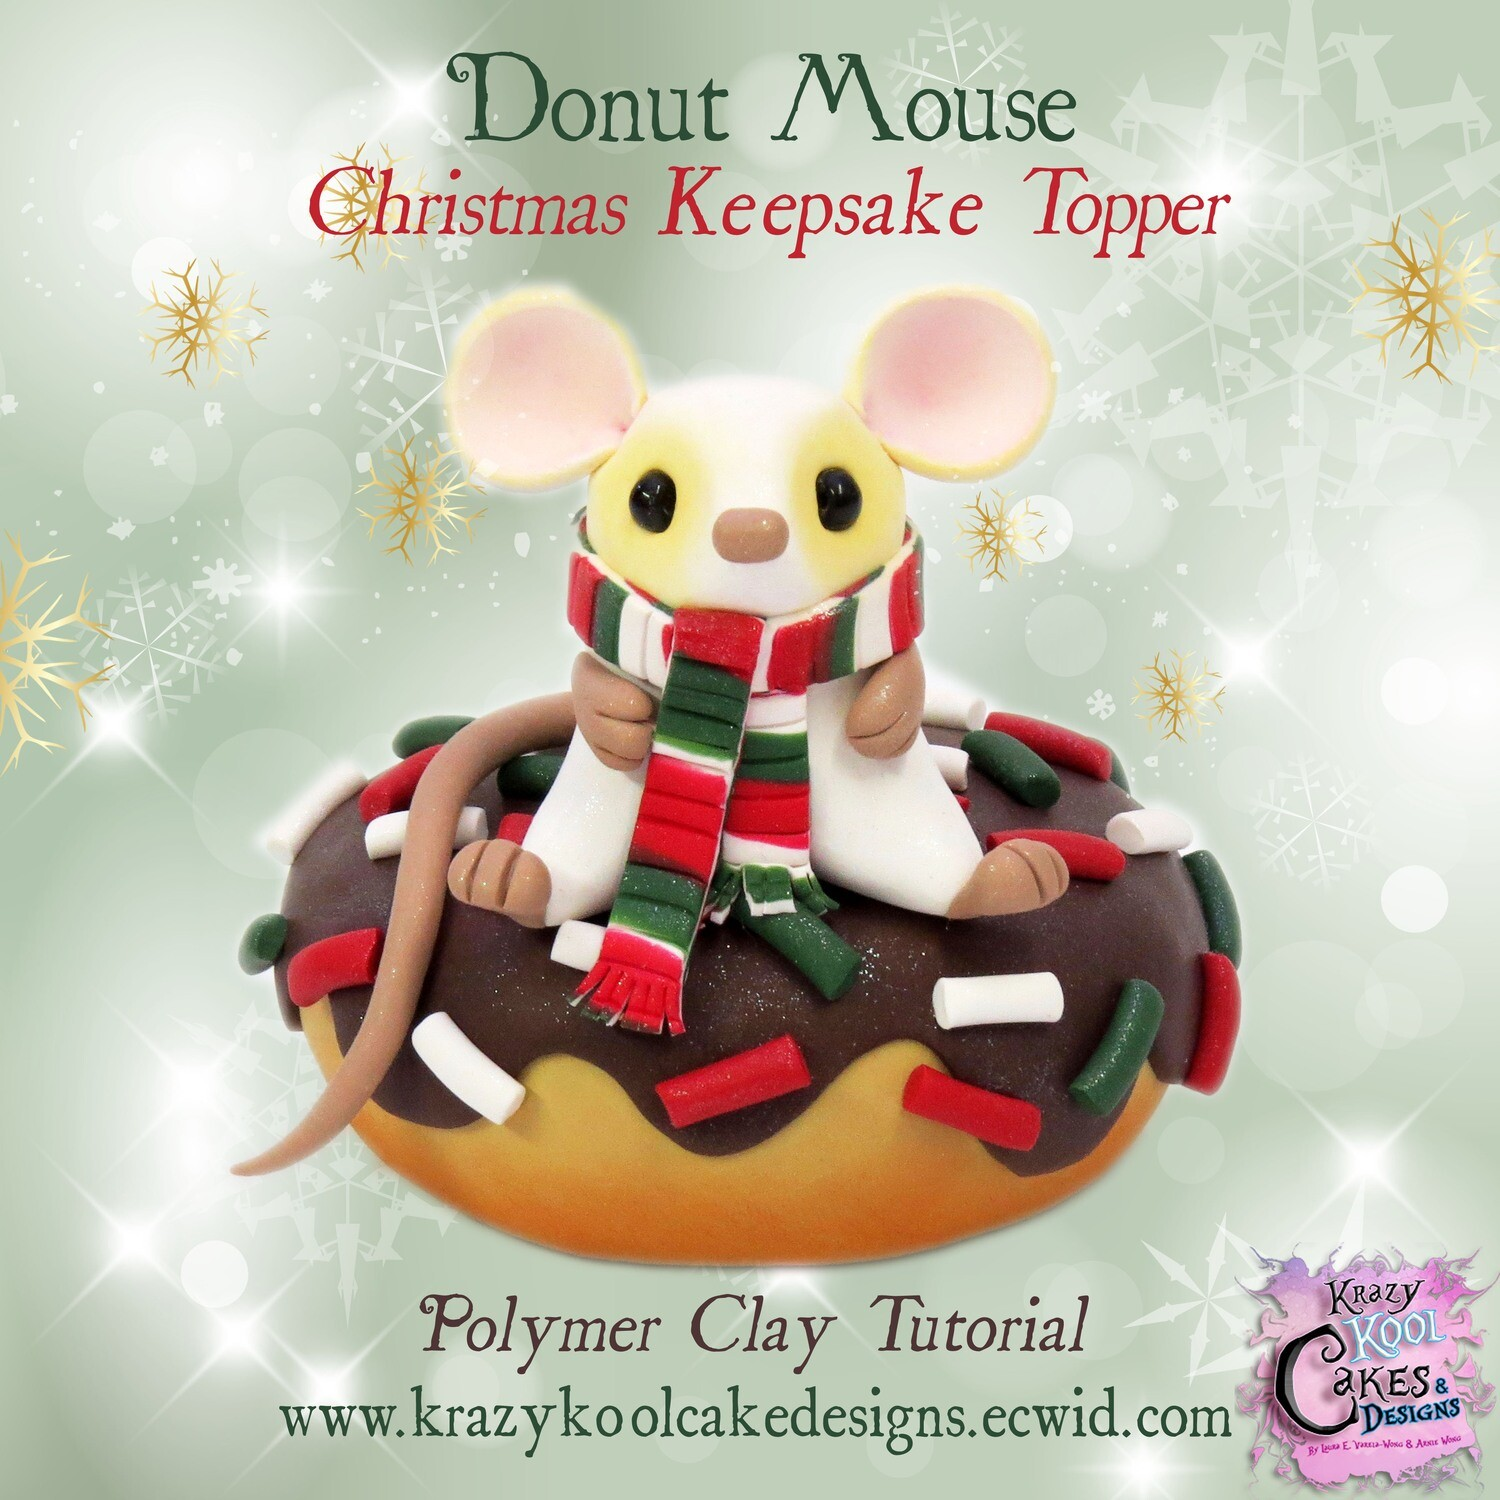 Donut Mouse Christmas Keepsake Topper: Polymer Clay Tutorial